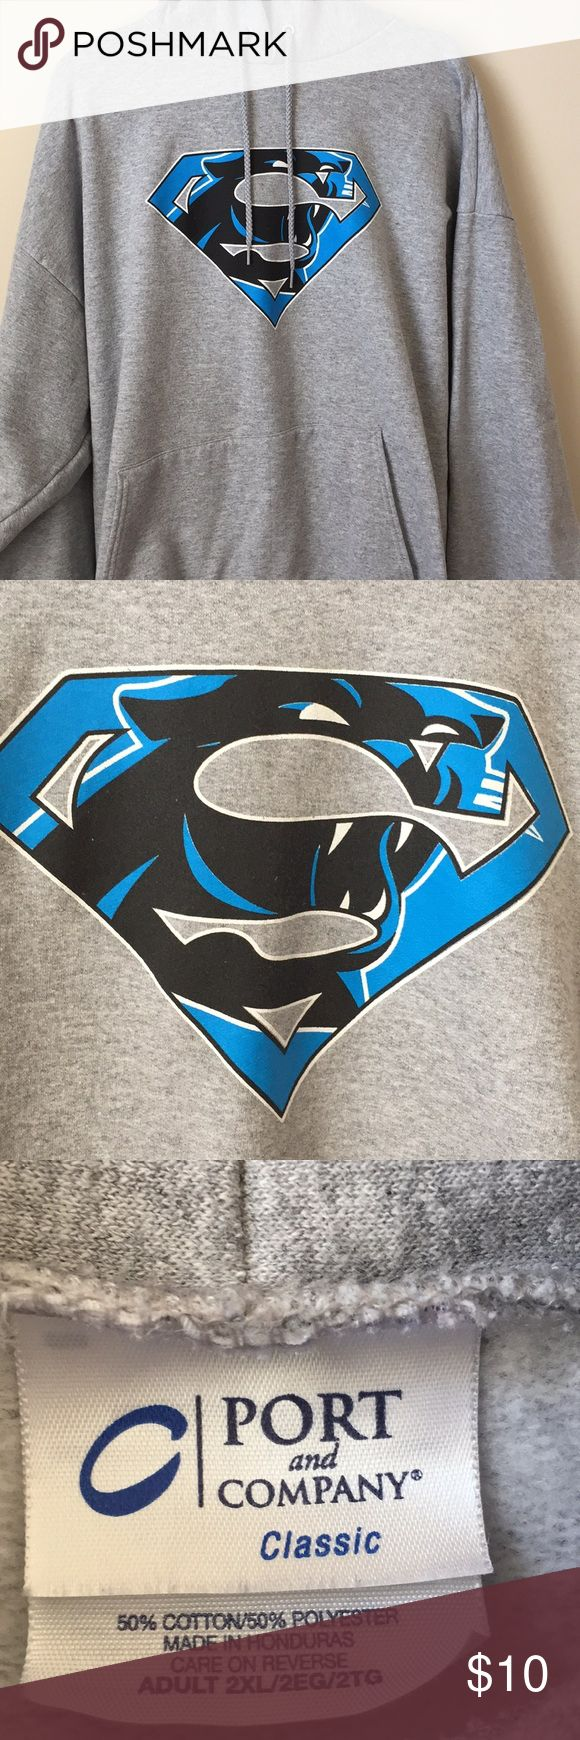 Cam Newton Carolina Panthers hoodie 2XL Carolina panthers Cam Newton superman hoodie. In very good condition. It does have a dark line, see picture. It looks like it could've been a pencil mark. But it is not a stain or mark it's just a dark spot in the fabric. Shirts Sweatshirts & Hoodies